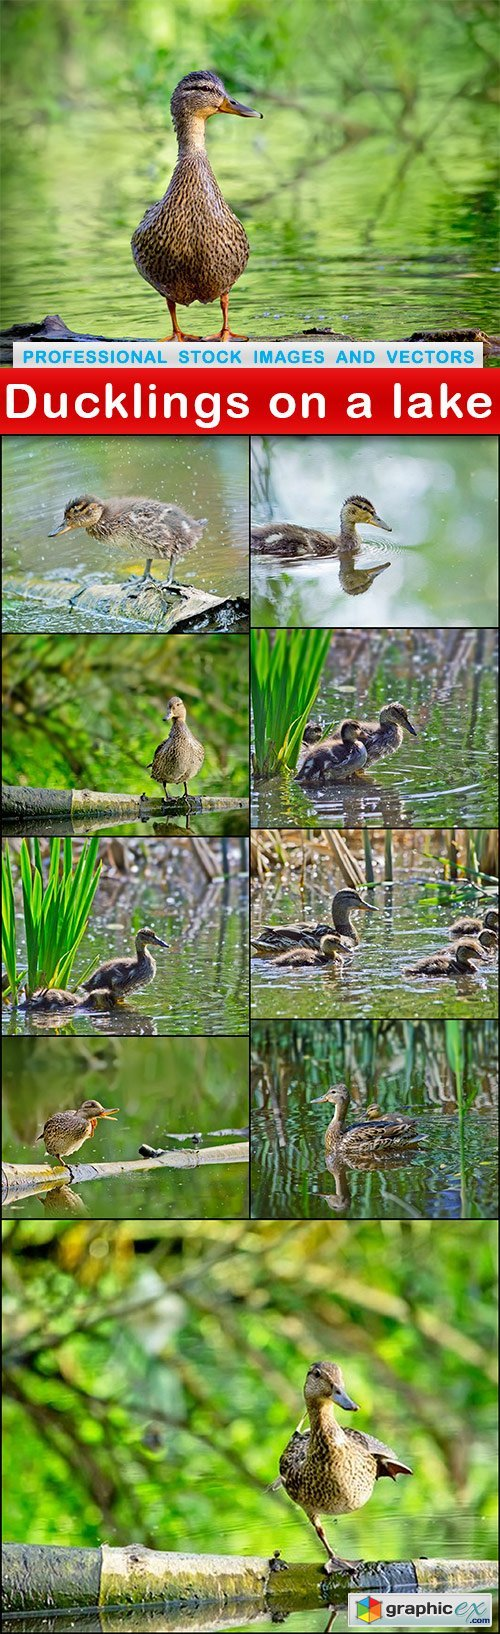 Ducklings on a lake - 10 UHQ JPEG